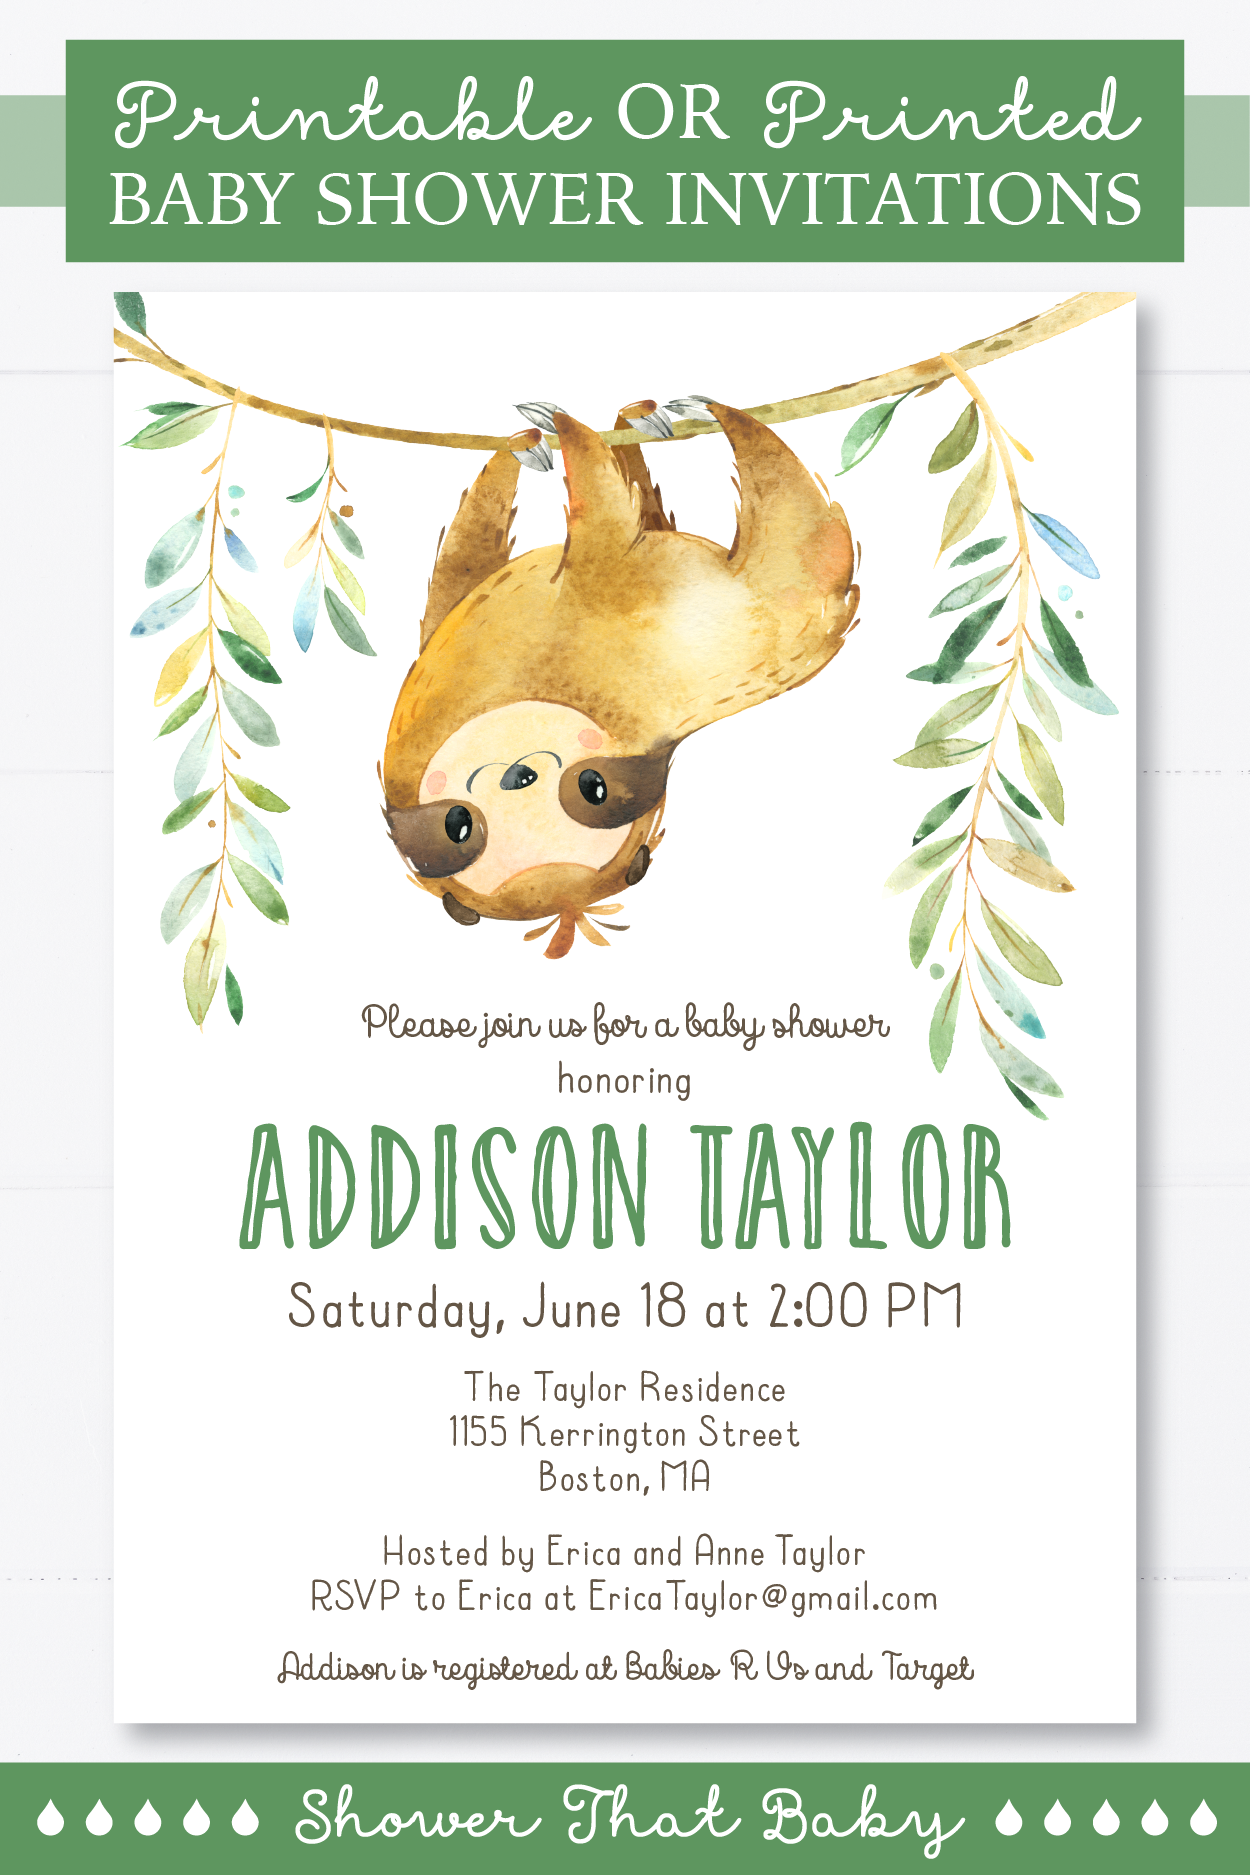 Sloth Baby Shower Invitation Printable Or Printed Sloth Themed Baby Shower Invites Boy Girl Gender Neutral Invite Green Brown 0076 Baby Shower Invitations Printed Baby Shower Printable Baby Shower Invitations